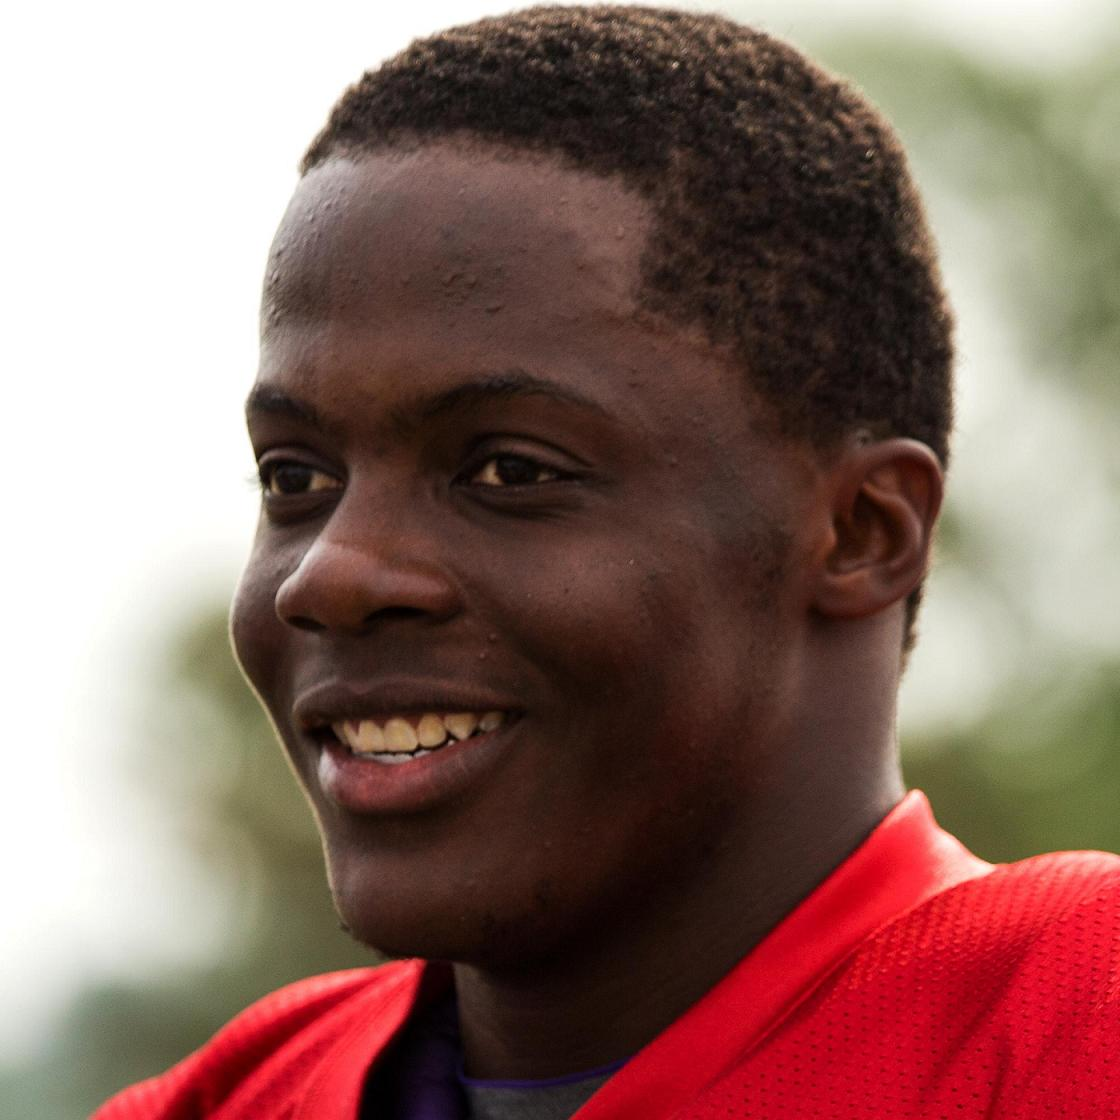 Teddy Bridgewater Bio, Net Worth, Facts